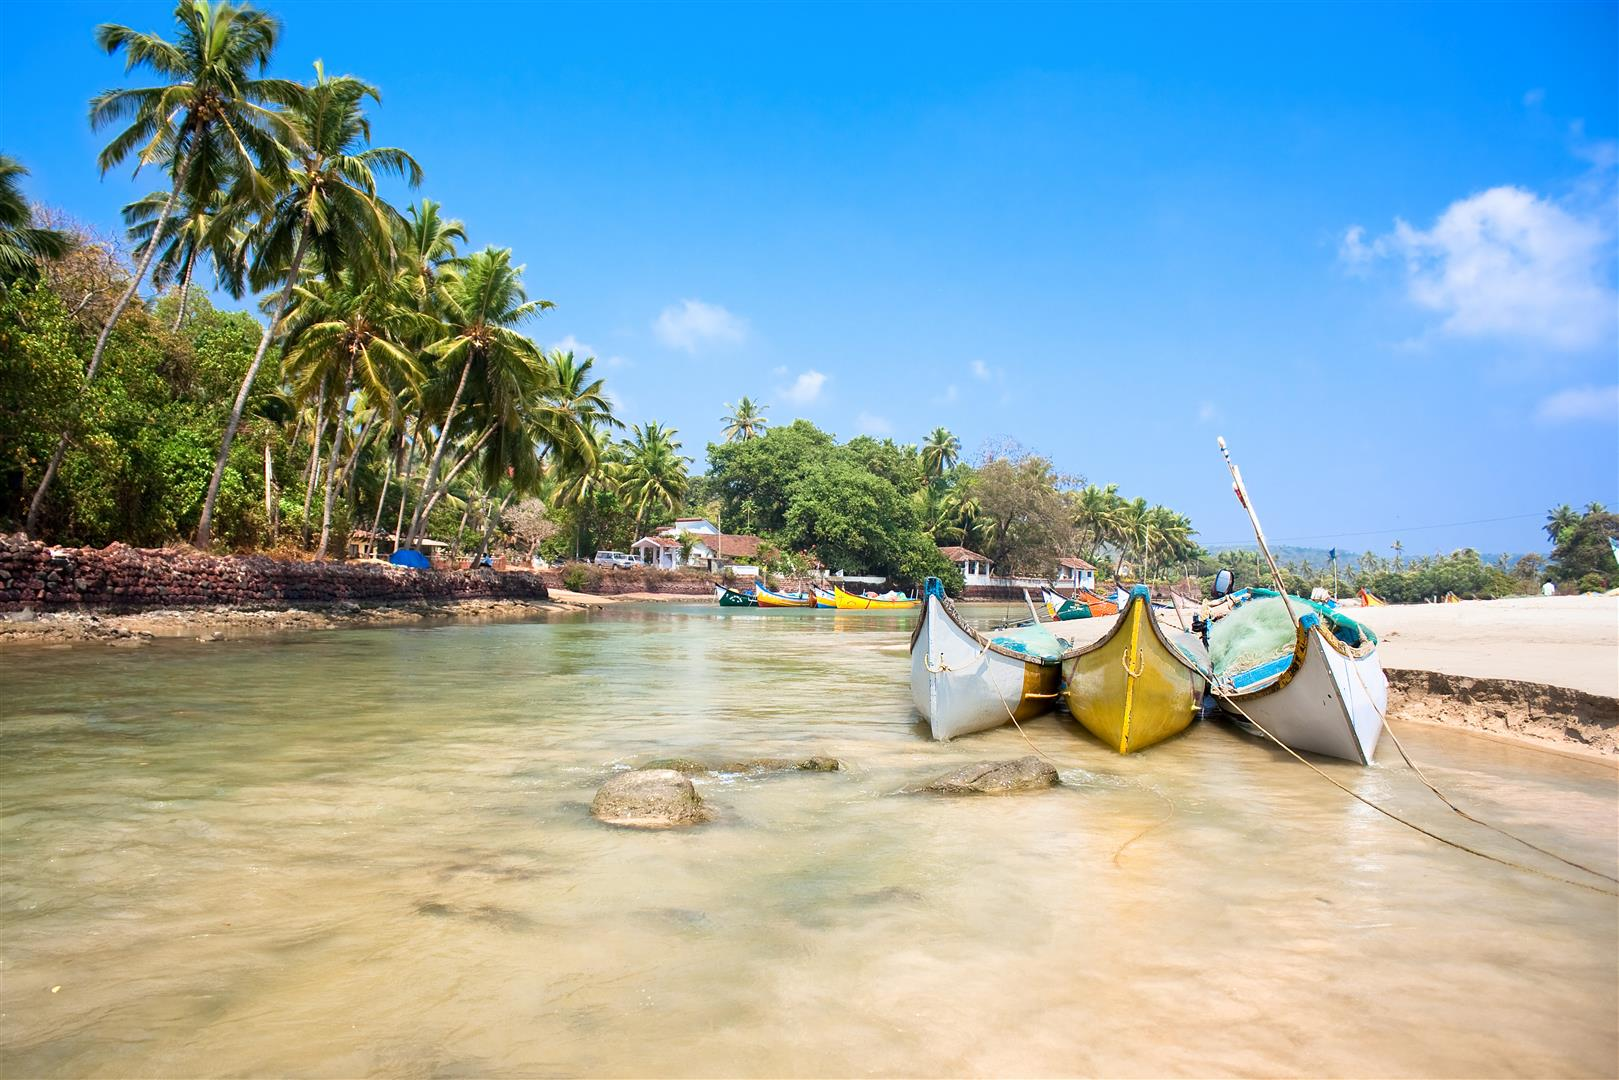 Baga Beach, Goa - Places to visit in Goa